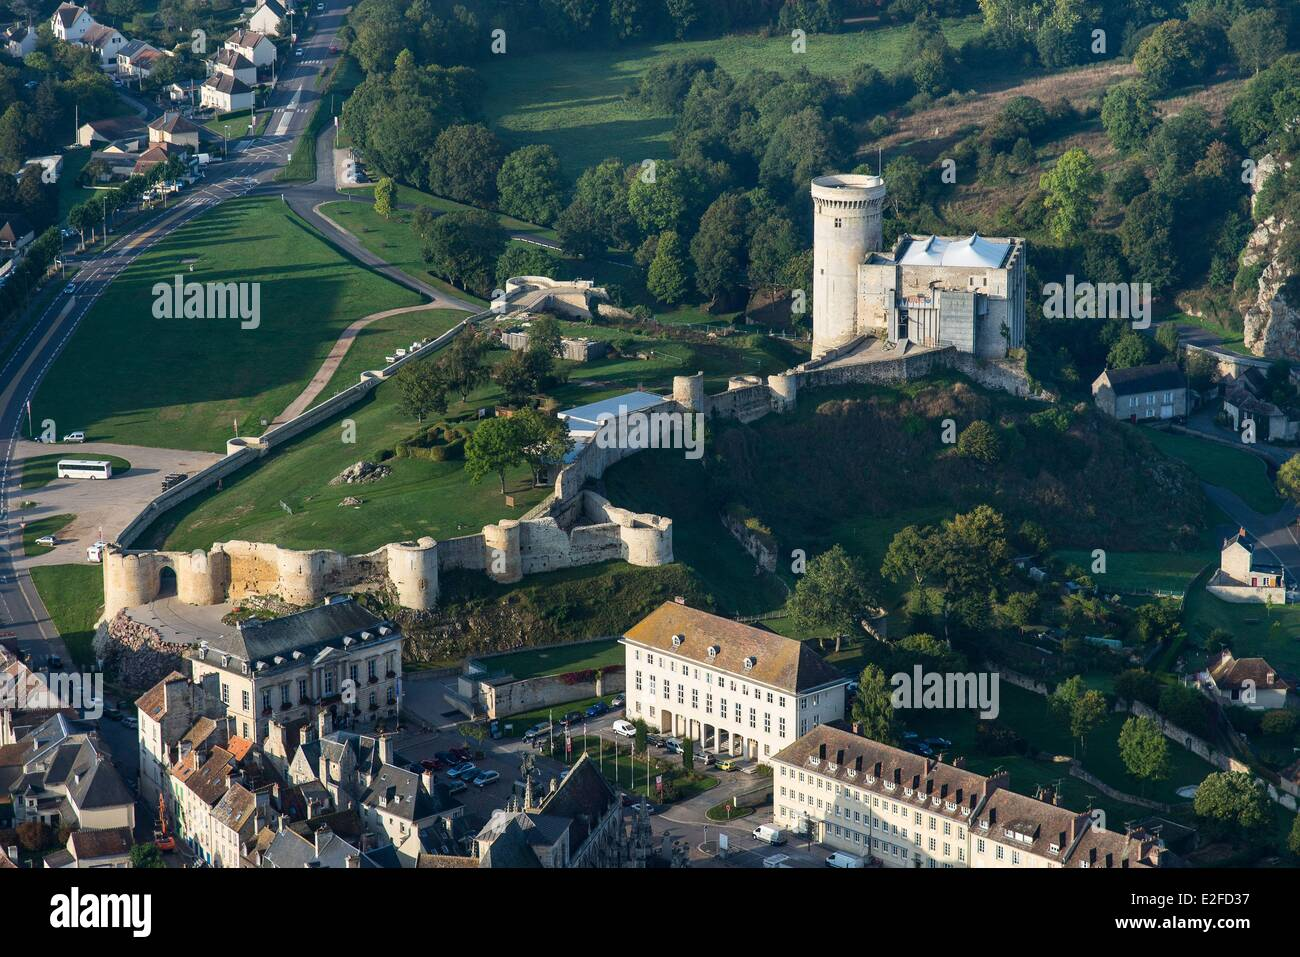 France, Calvados, Falaise, Falaise castle dated 12th 13th century (aerial view) Stock Photo